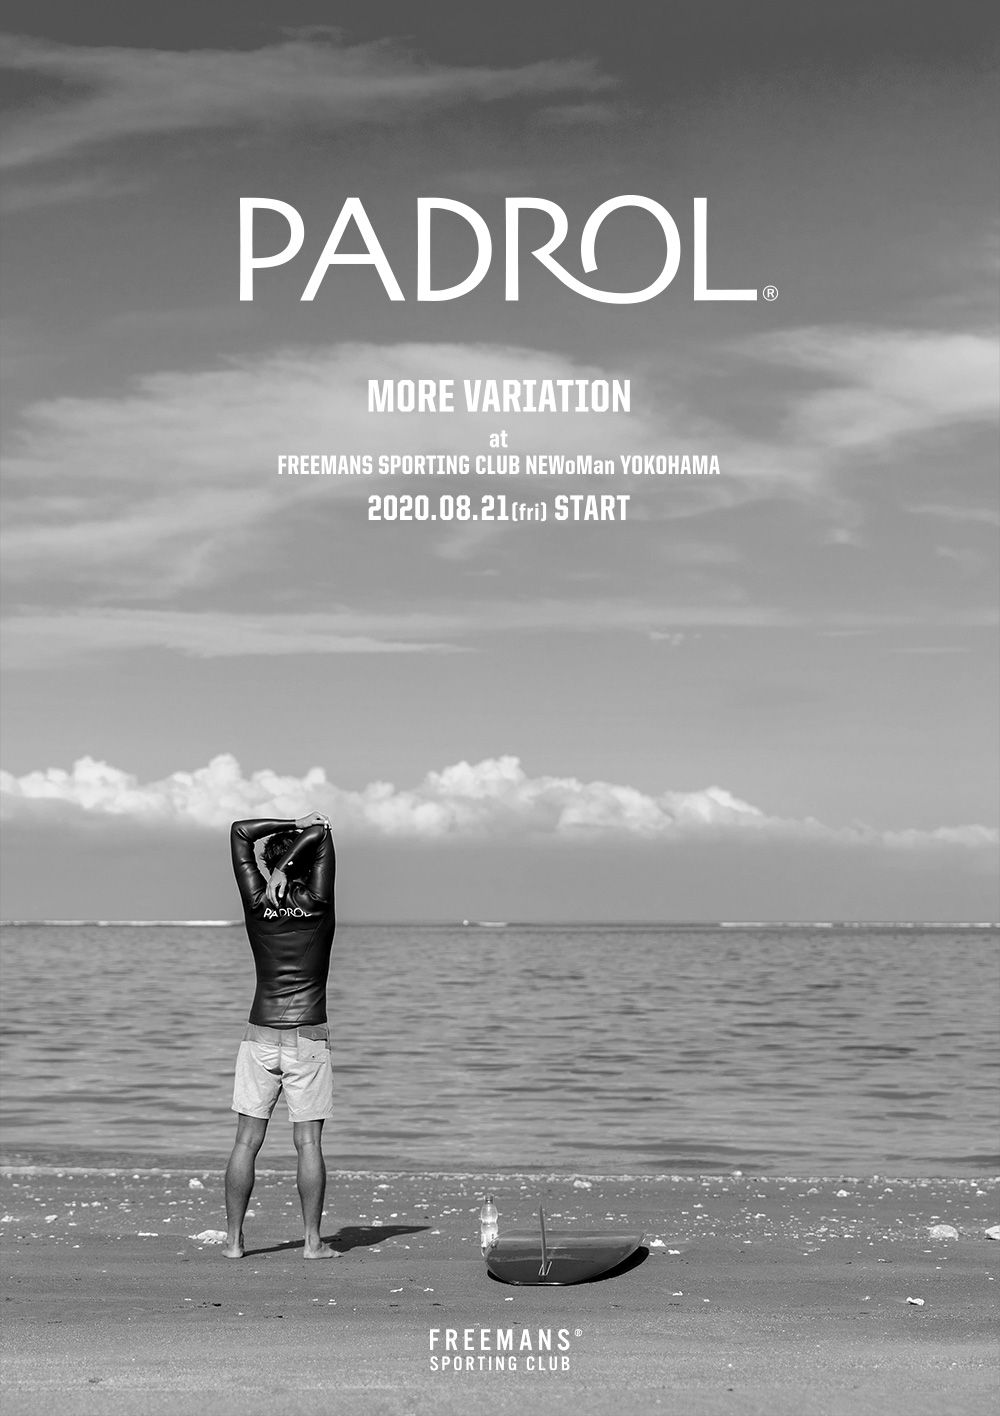 PADROL MORE VARIATION